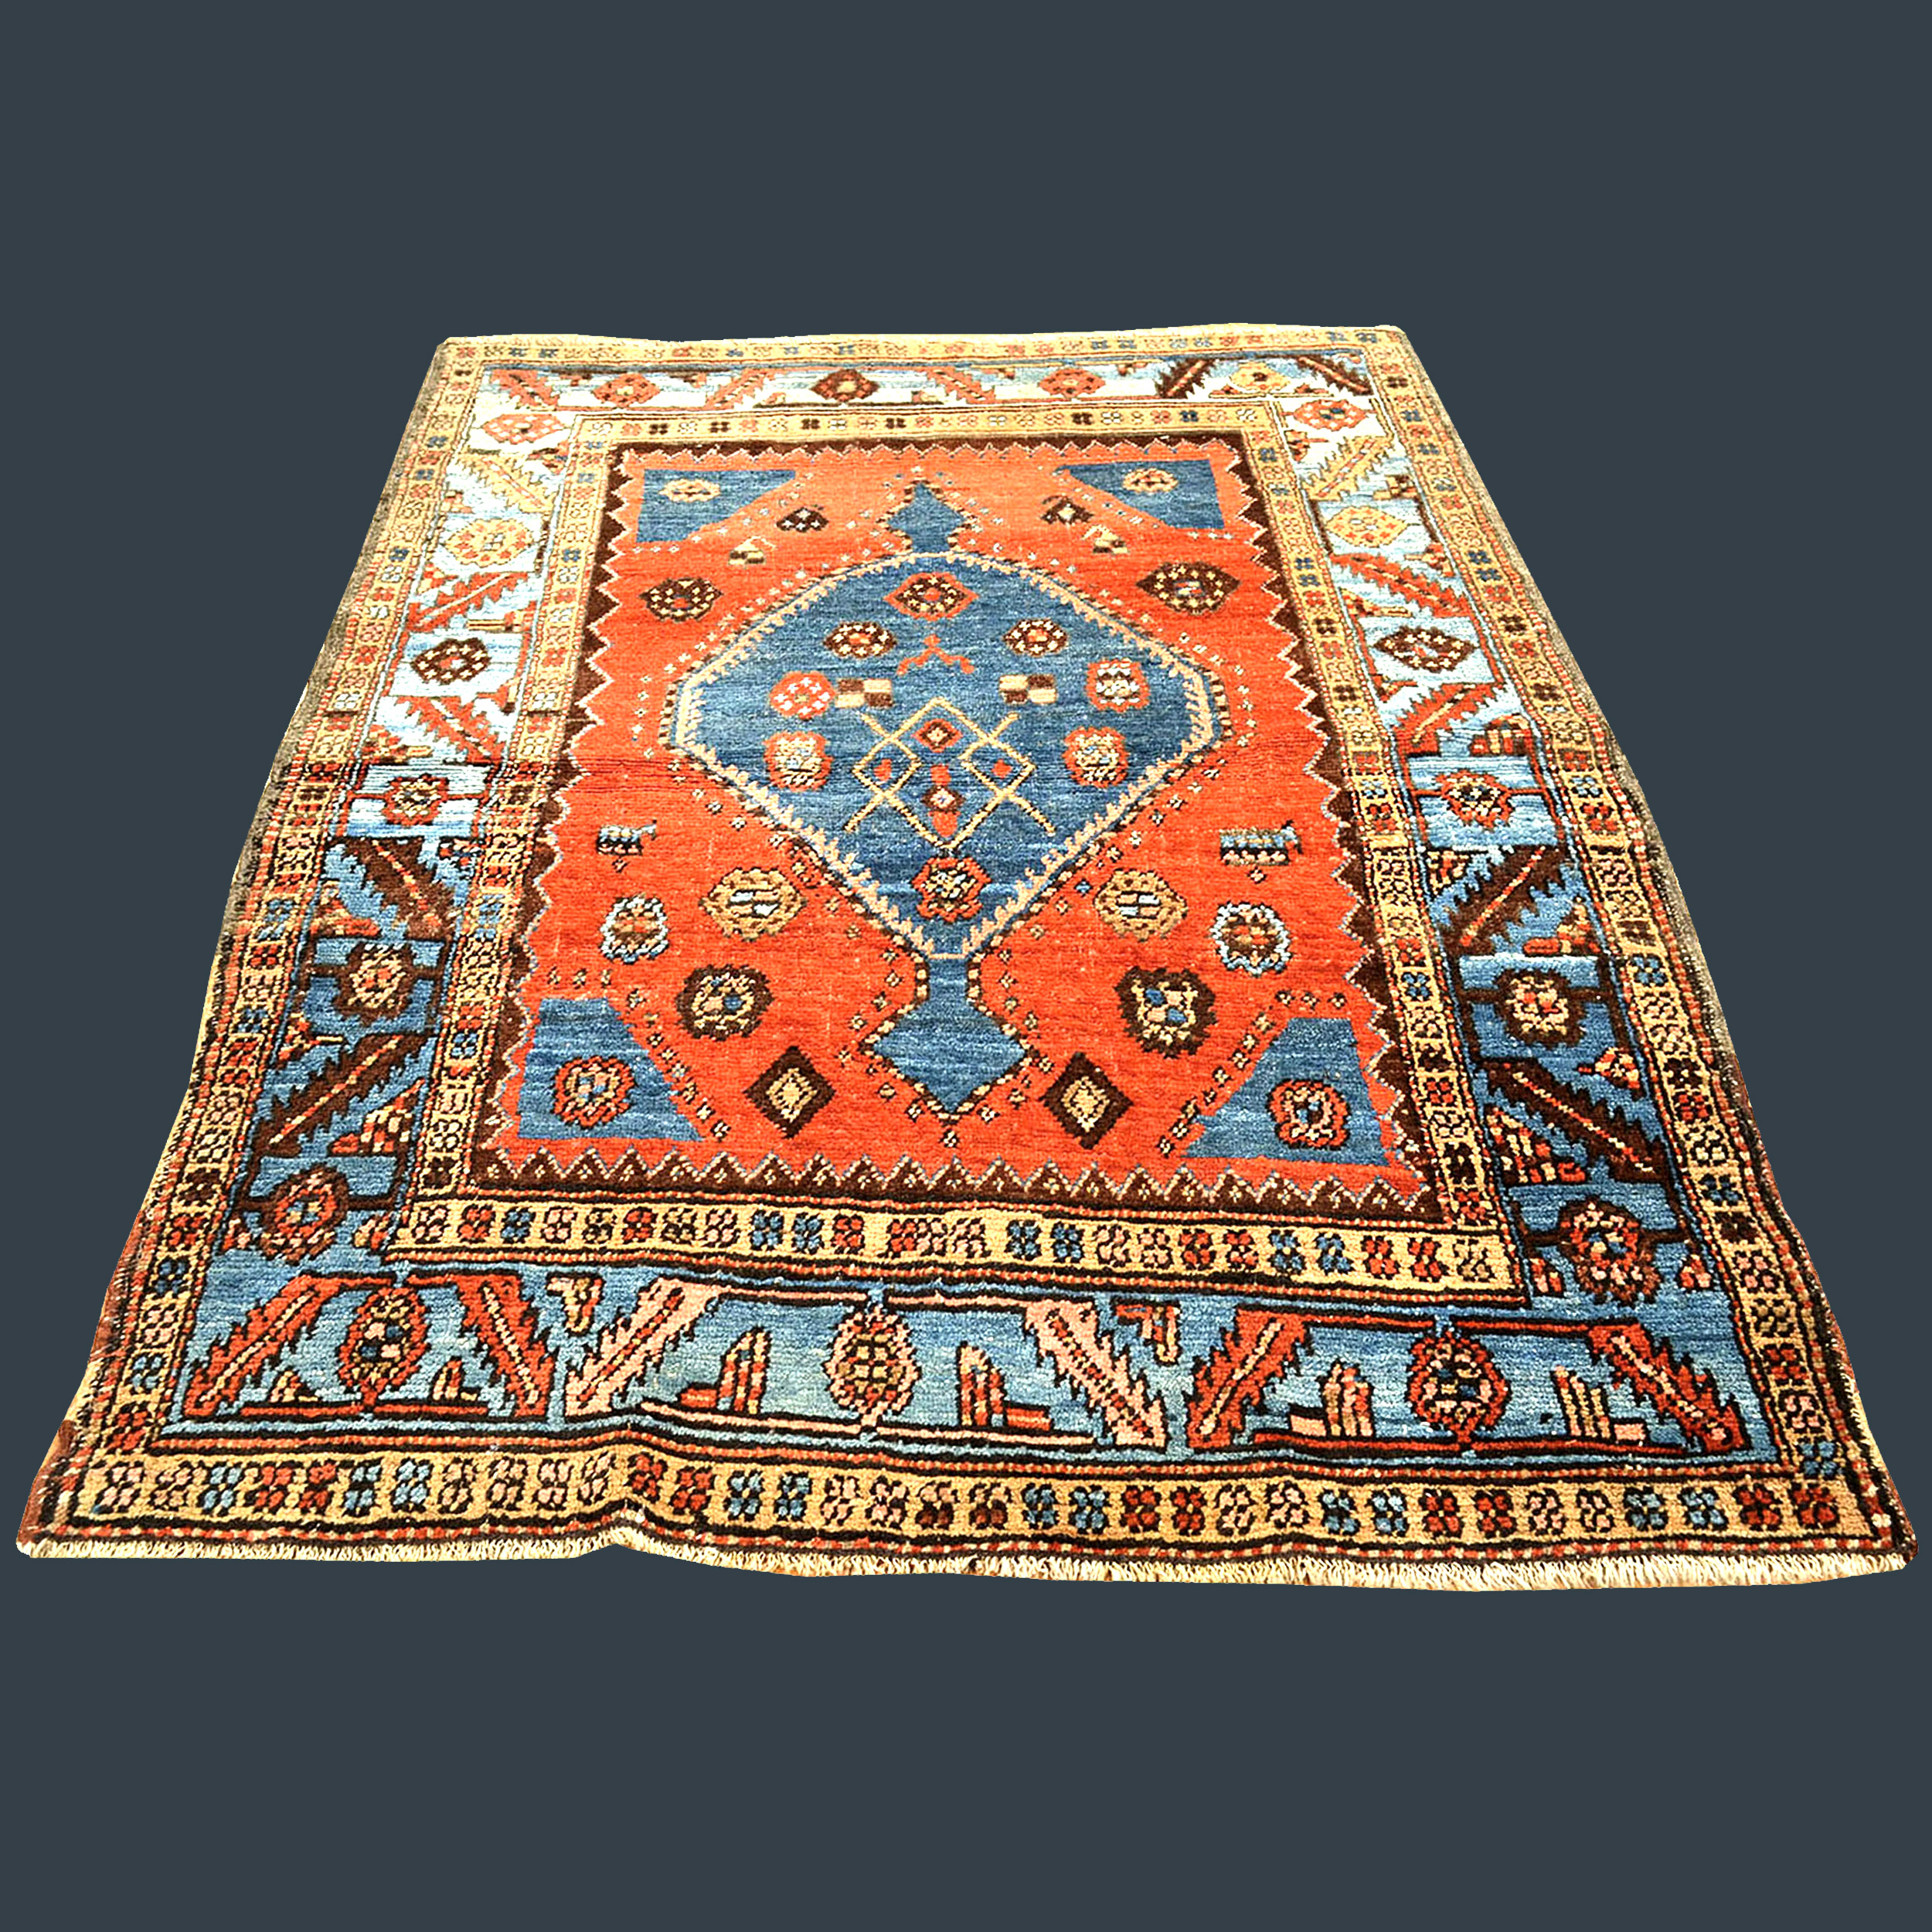 Antique Bakshaish rug with a denim blue medallion on a deep salmon color field that is framed by a sky blue border, northwest Persia, circa 1890 - Douglas Stock Gallery antique Oriental rugs research archives